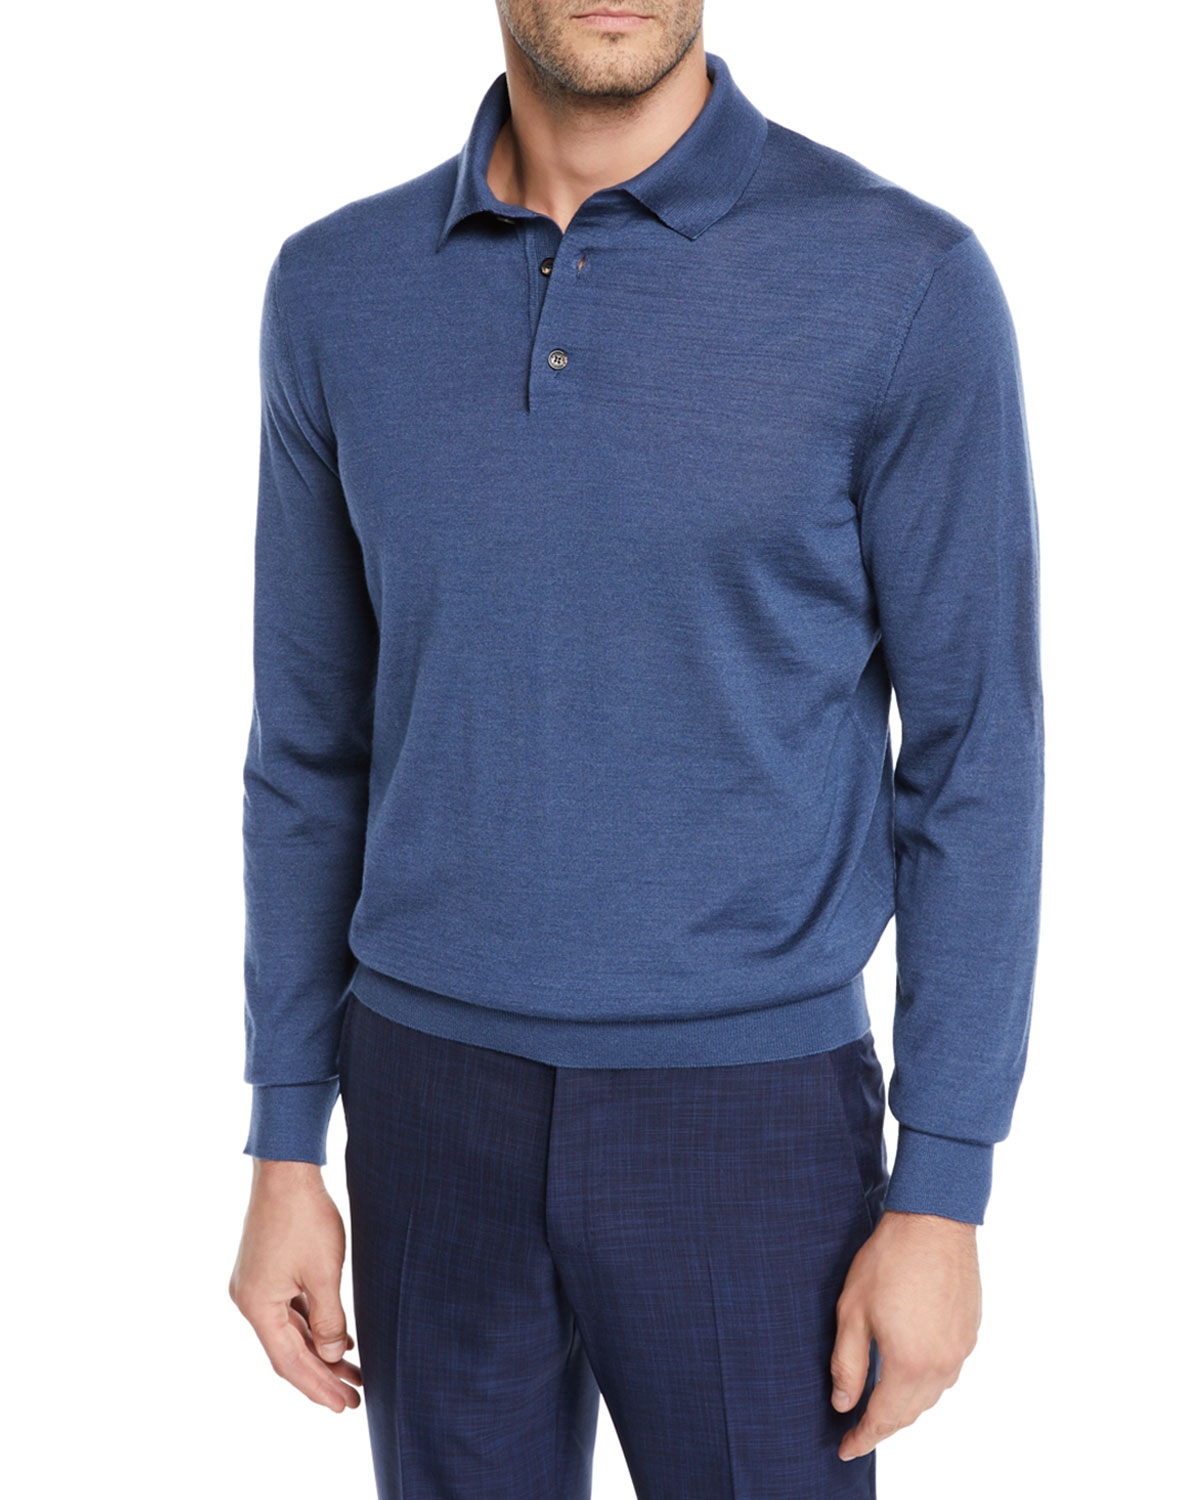 fdc389846d Men's Cashmere/Silk Long-Sleeve Polo Sweater